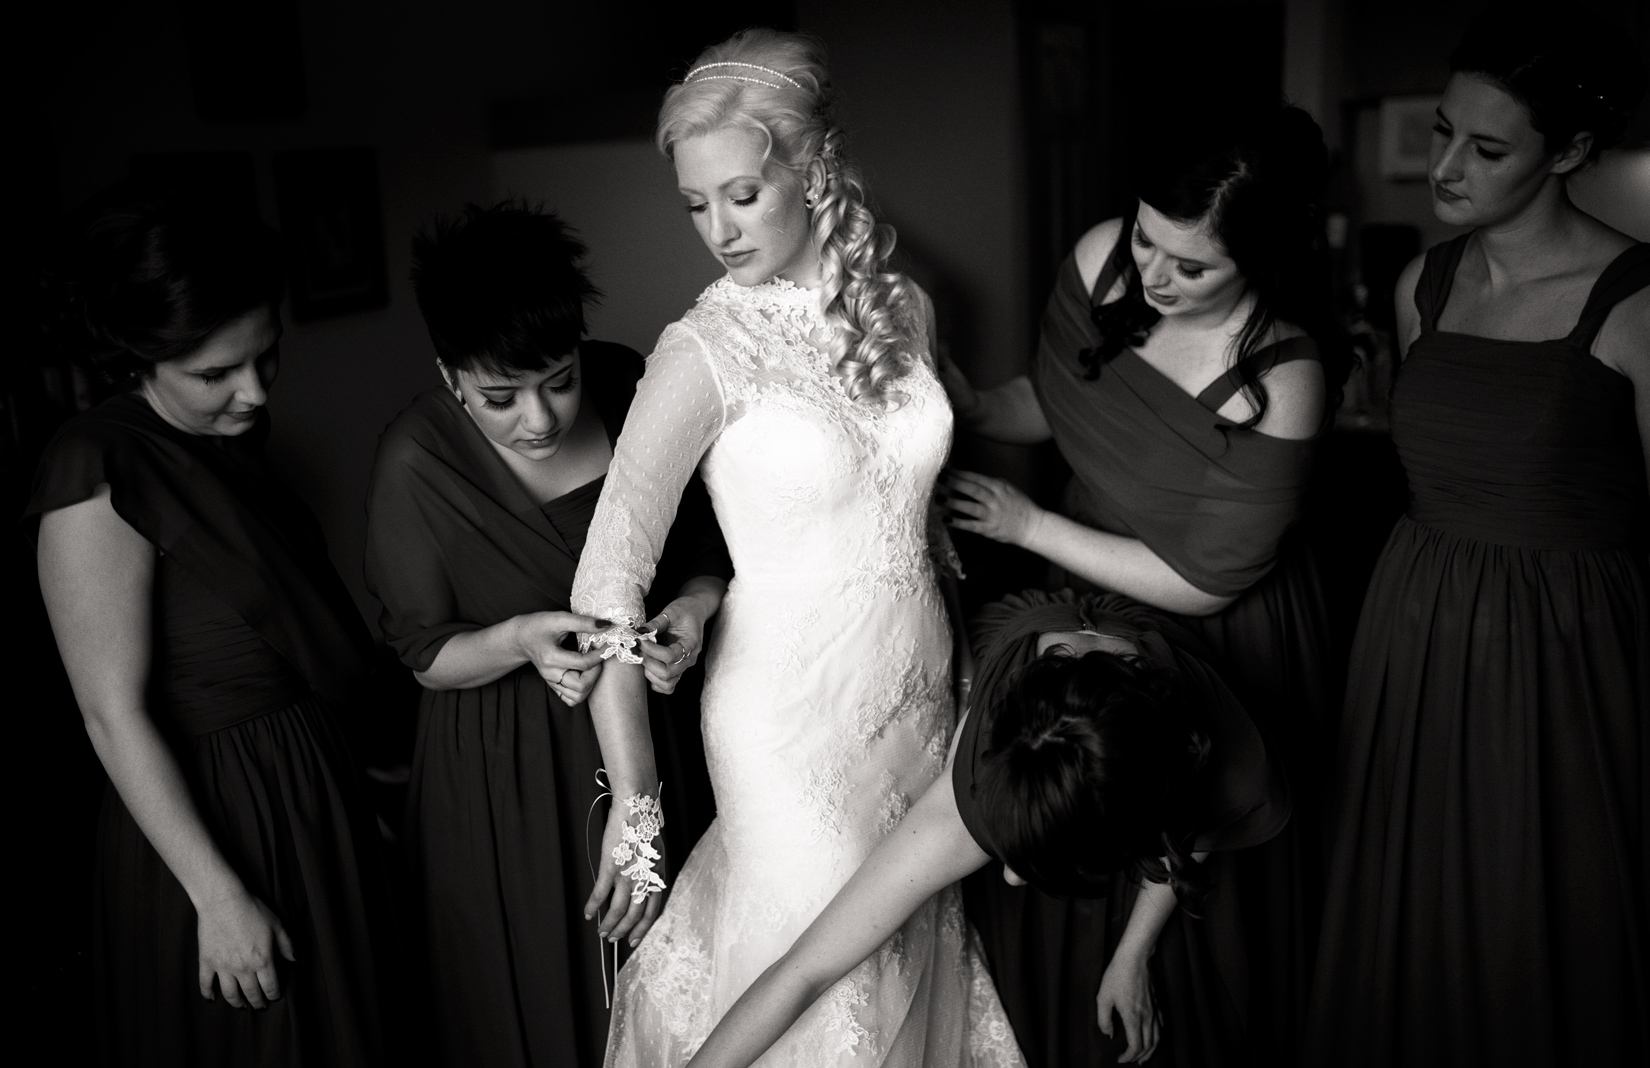 bride-in-black-and-white-photo